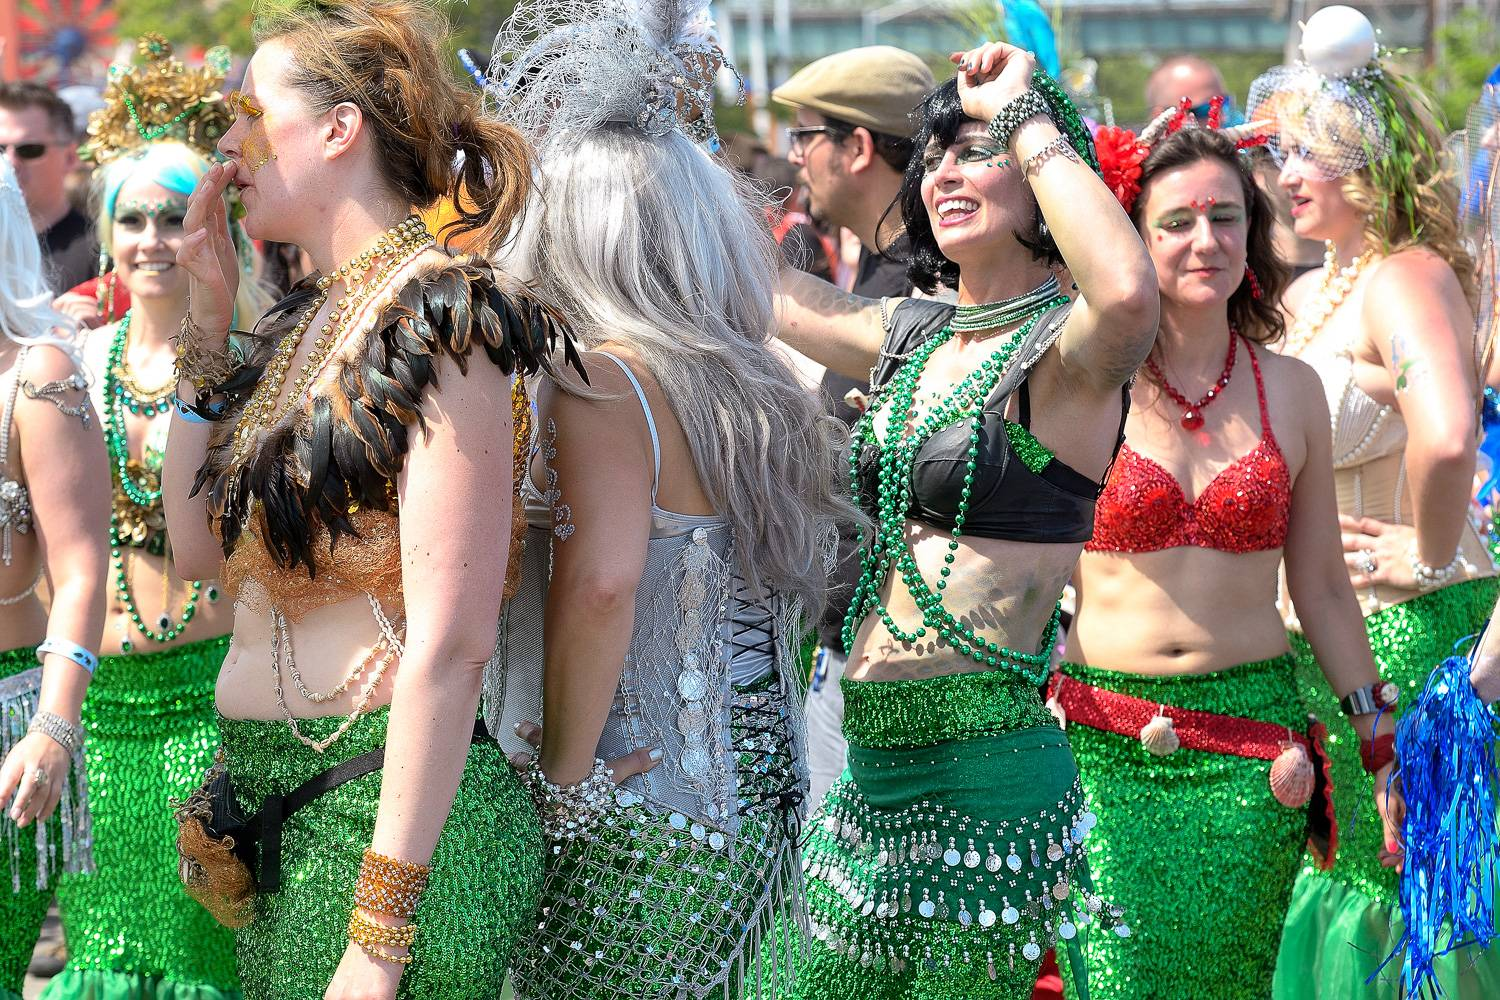 Image of marchers in the Coney Island Mermaid Parade in mermaid costumes.